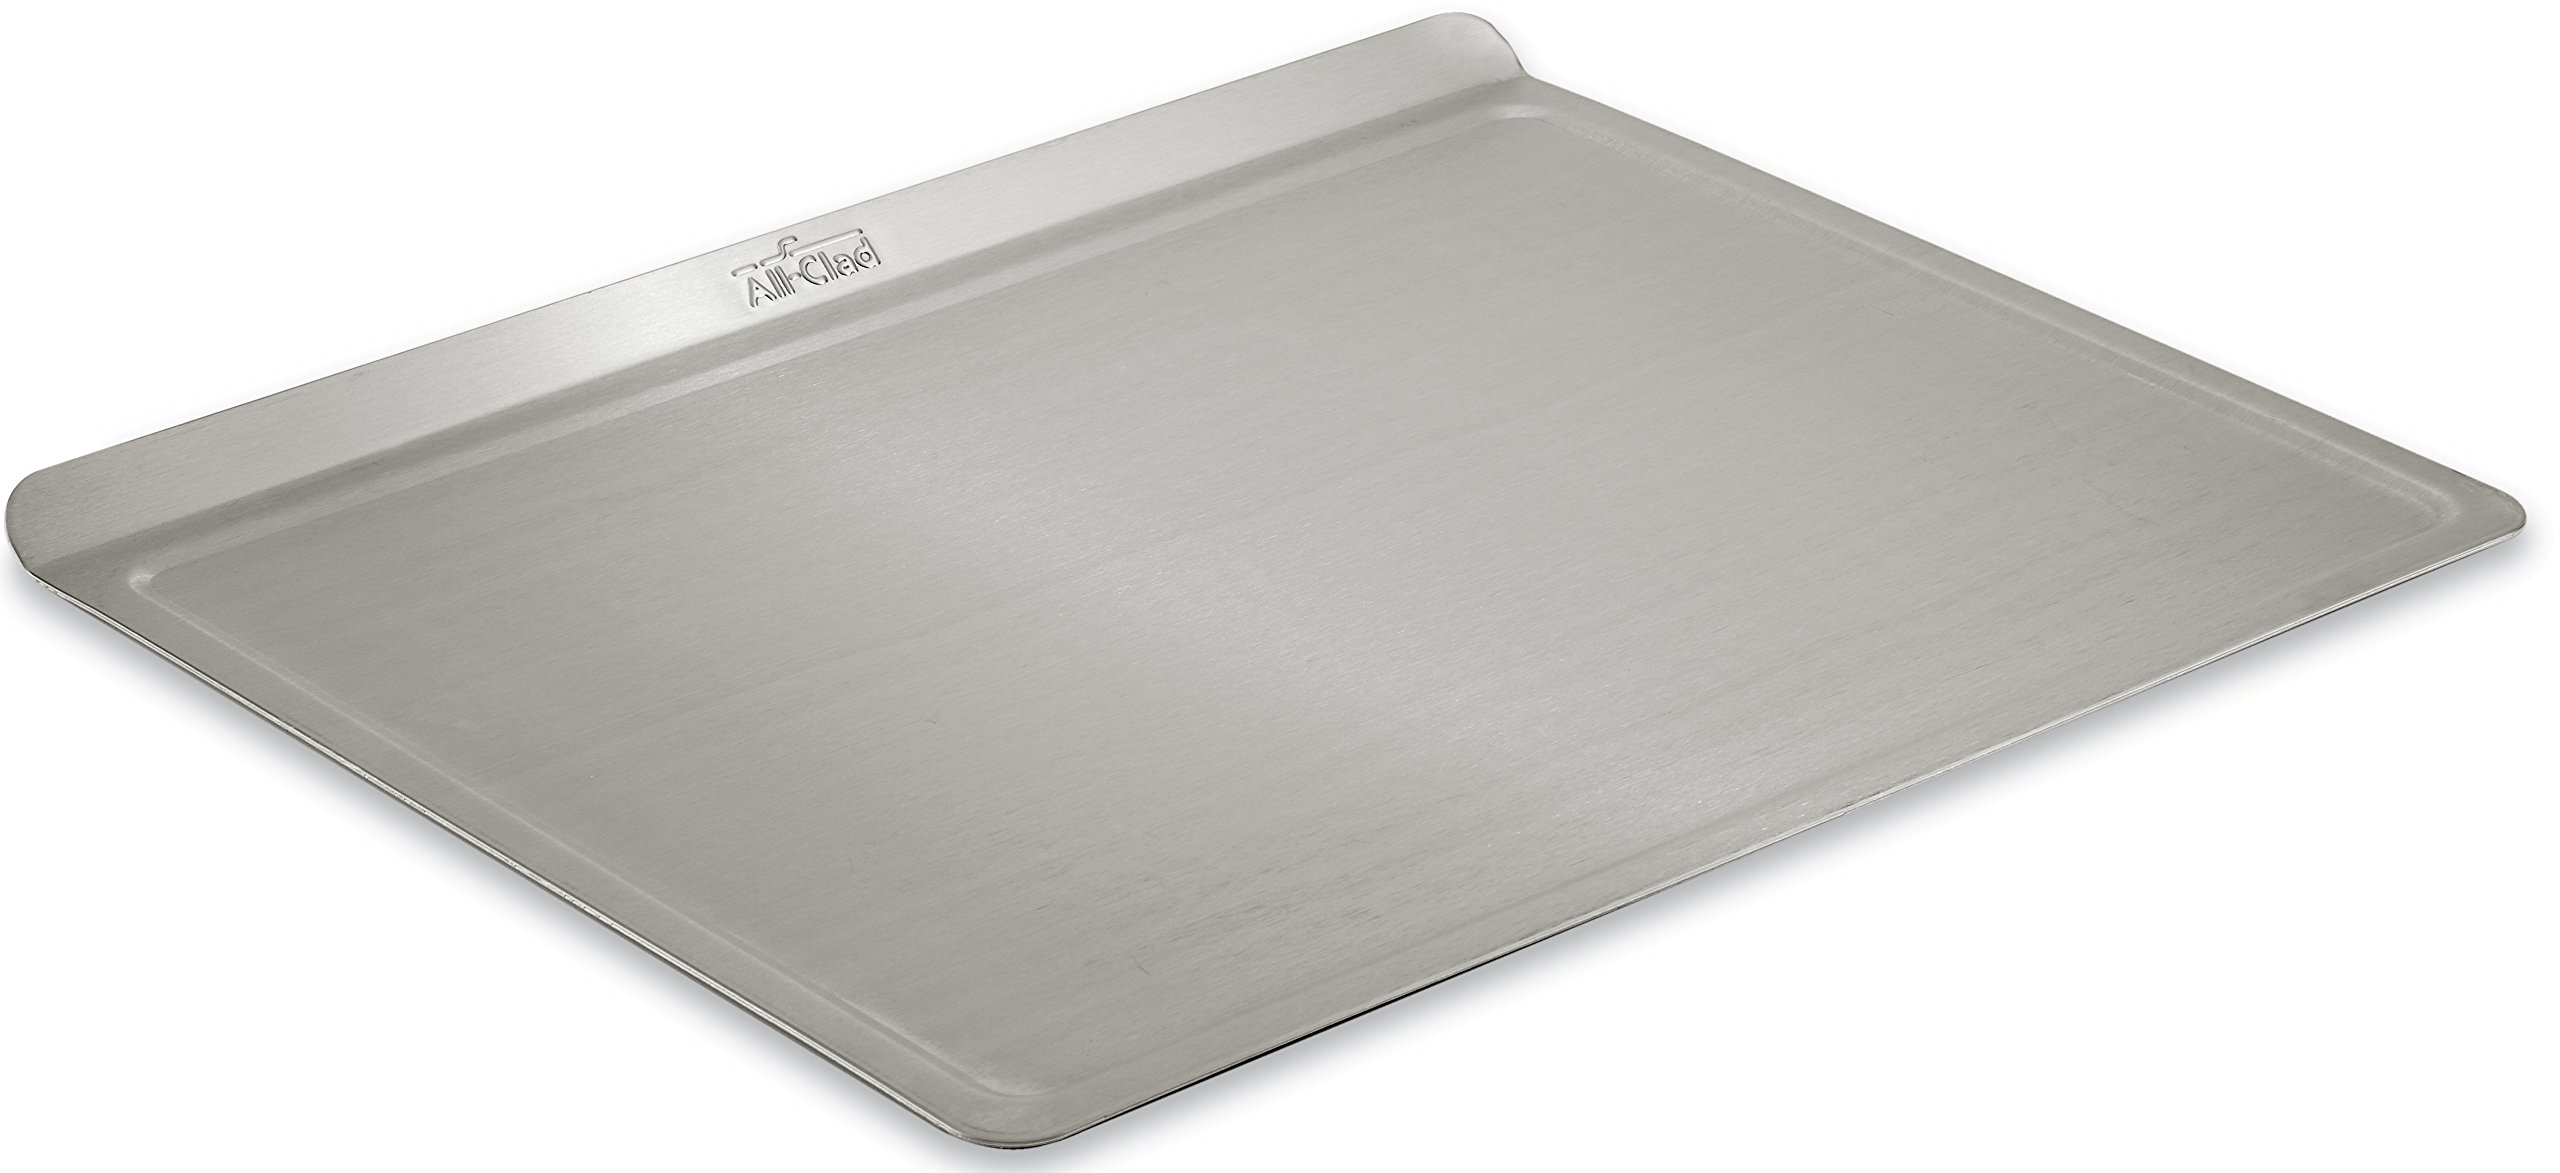 All-Clad 9003TS 18/10 Stainless Steel Baking Sheet Ovenware, 14-Inch by 17-Inch, Silver